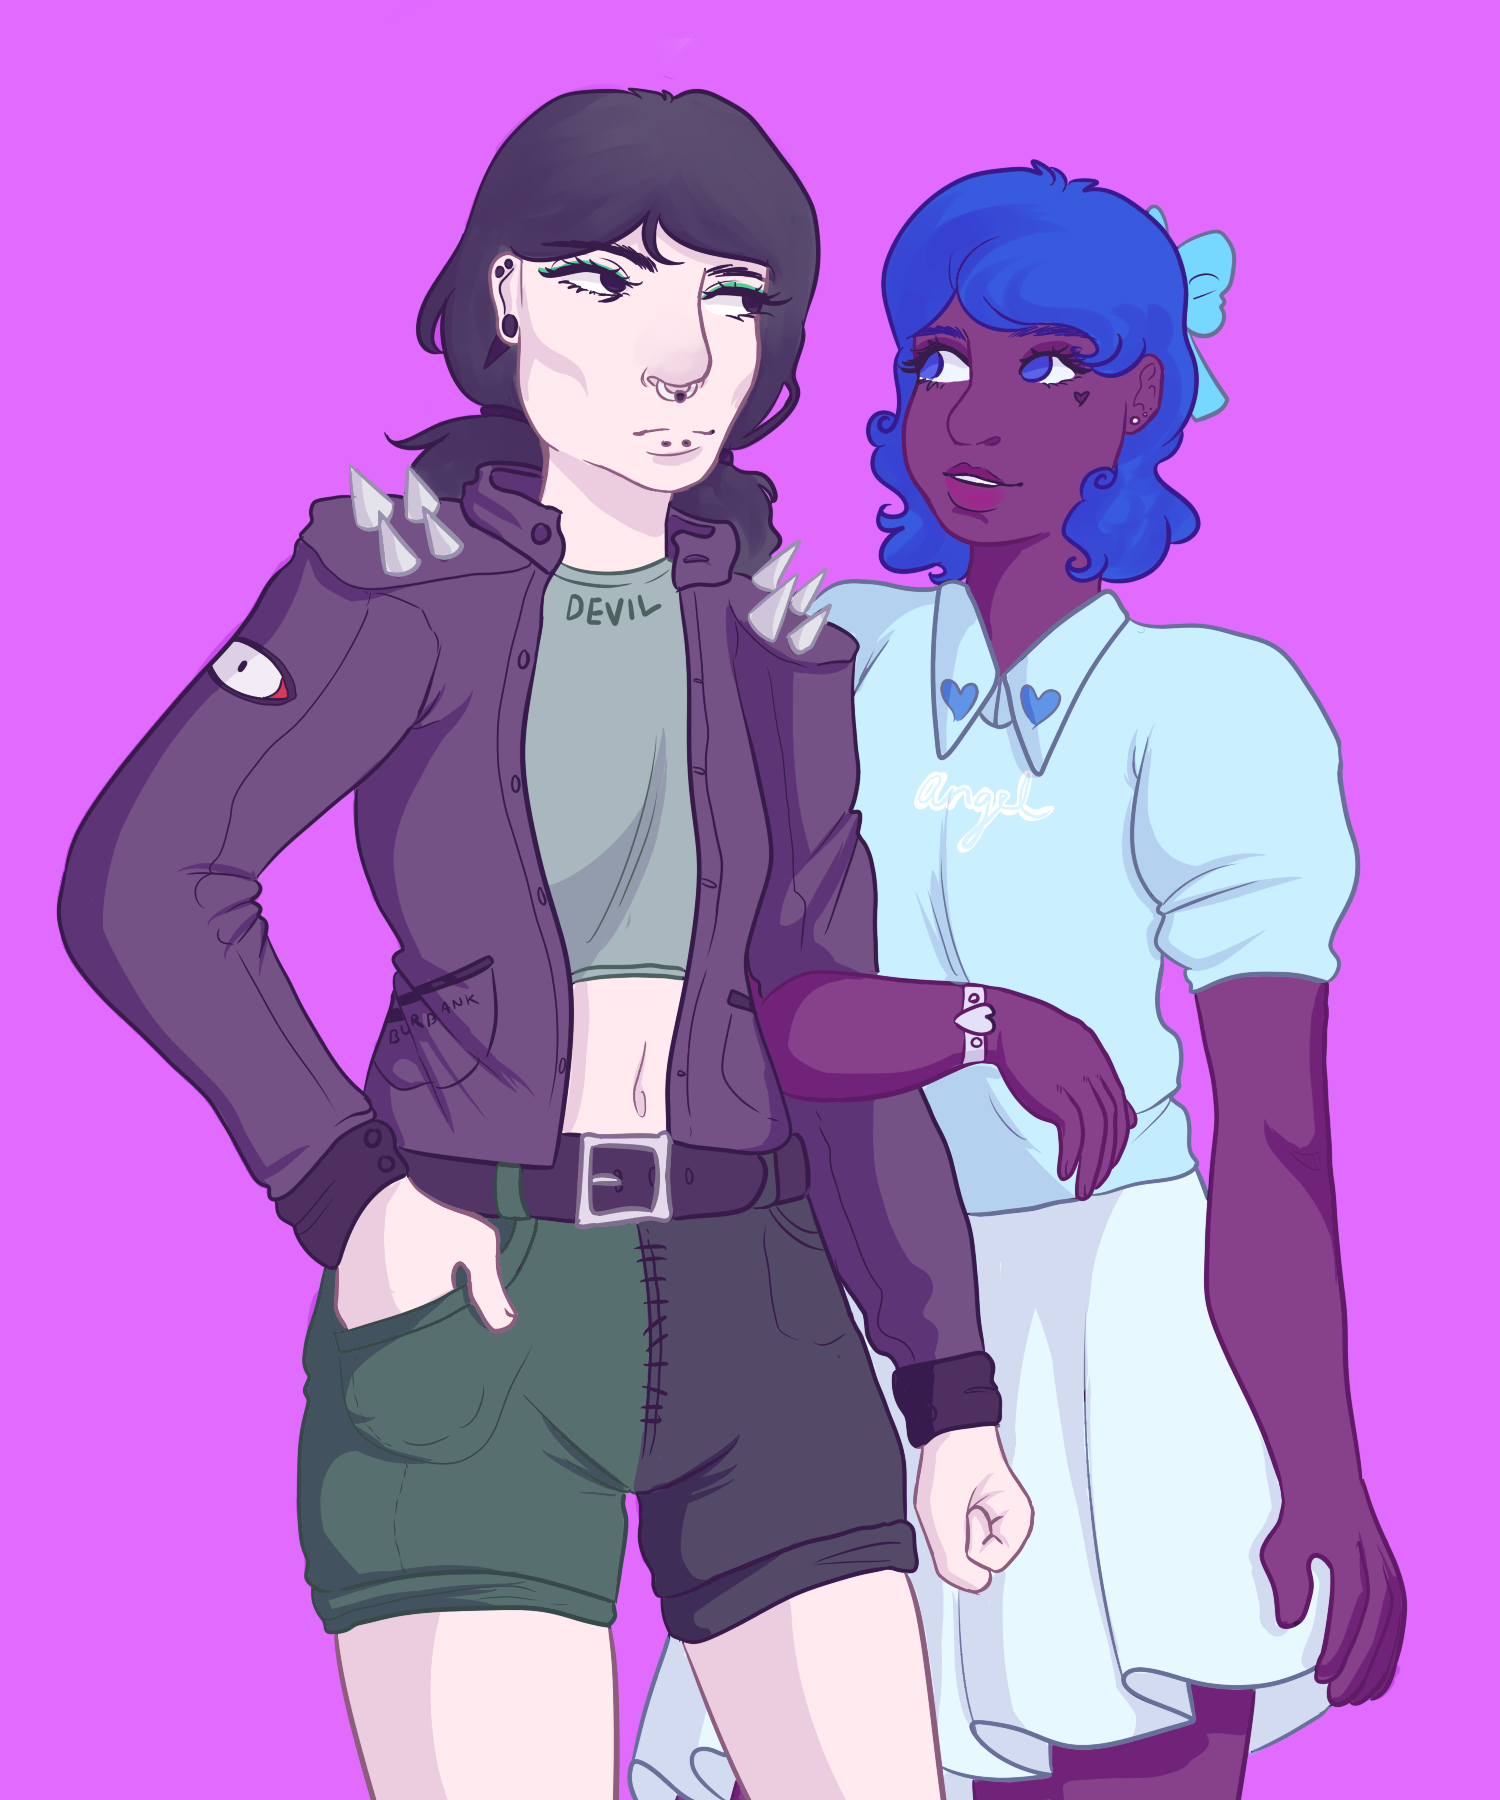 fashionable gays by ghoulplum